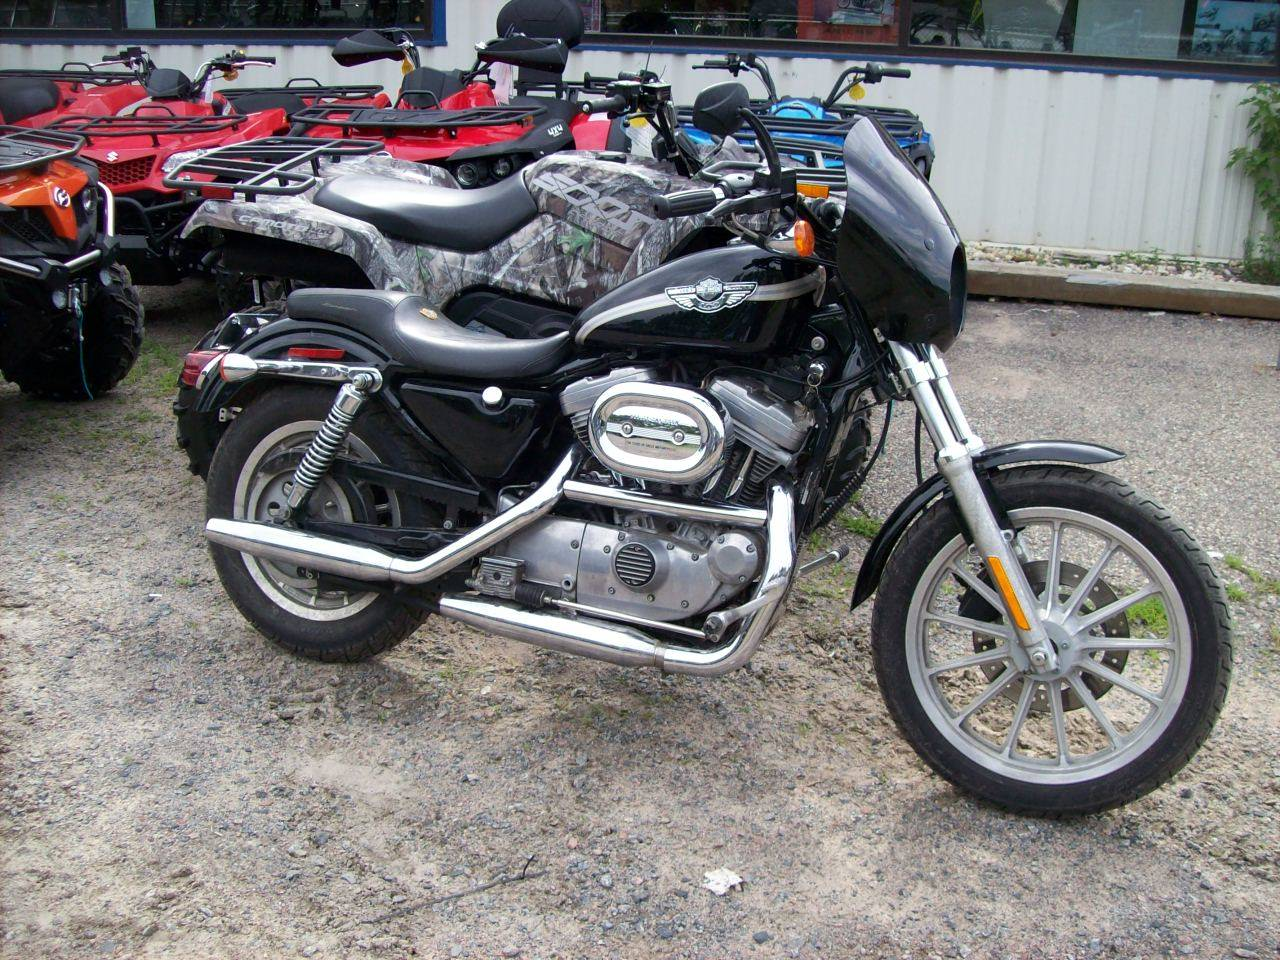 used 2003 harley davidson xlh sportster 883 motorcycles in wisconsin rapids wi stock number. Black Bedroom Furniture Sets. Home Design Ideas